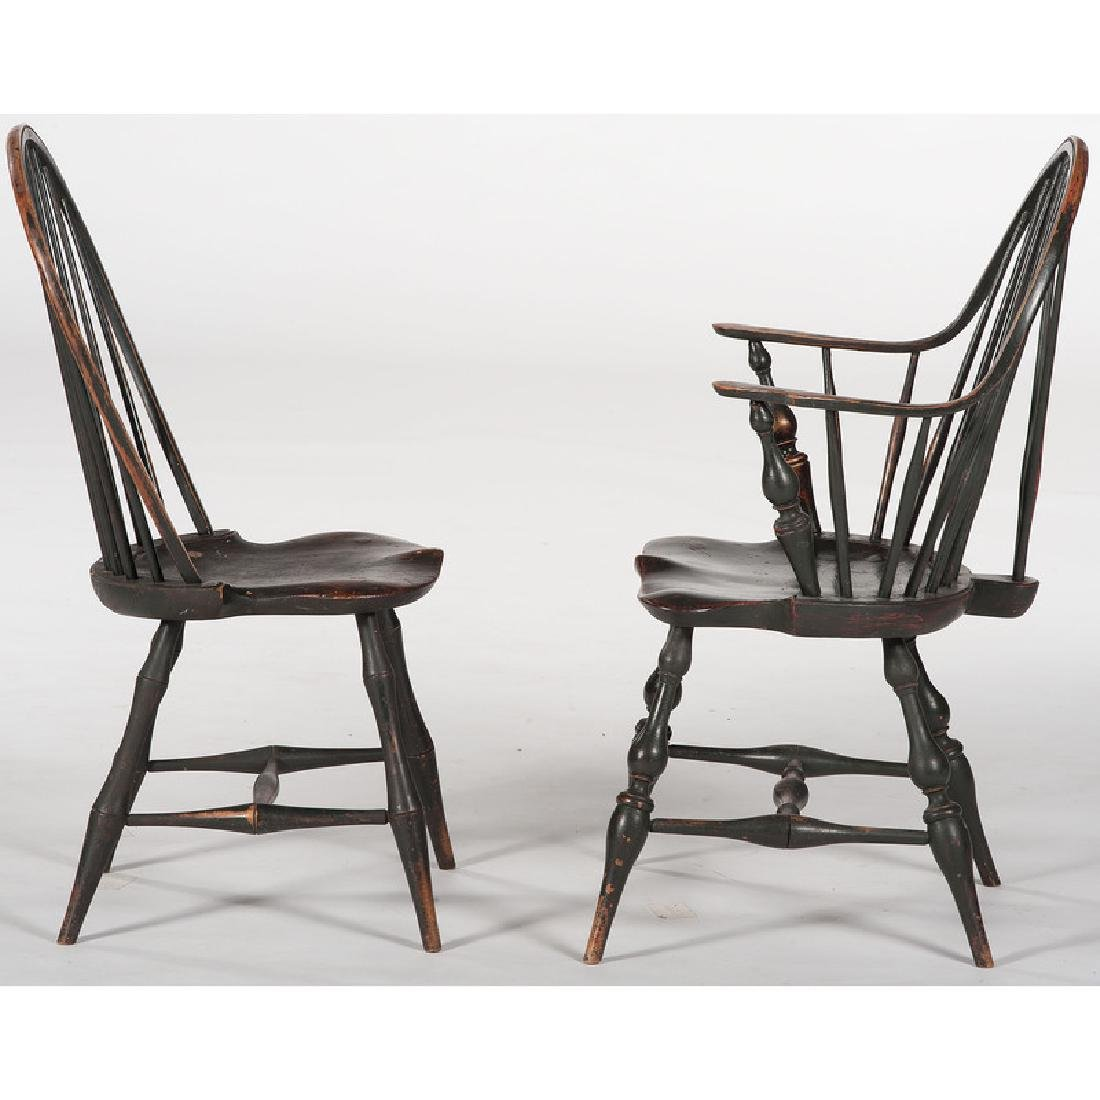 Bowback Windsor Chairs by D.R. Dimes - 2